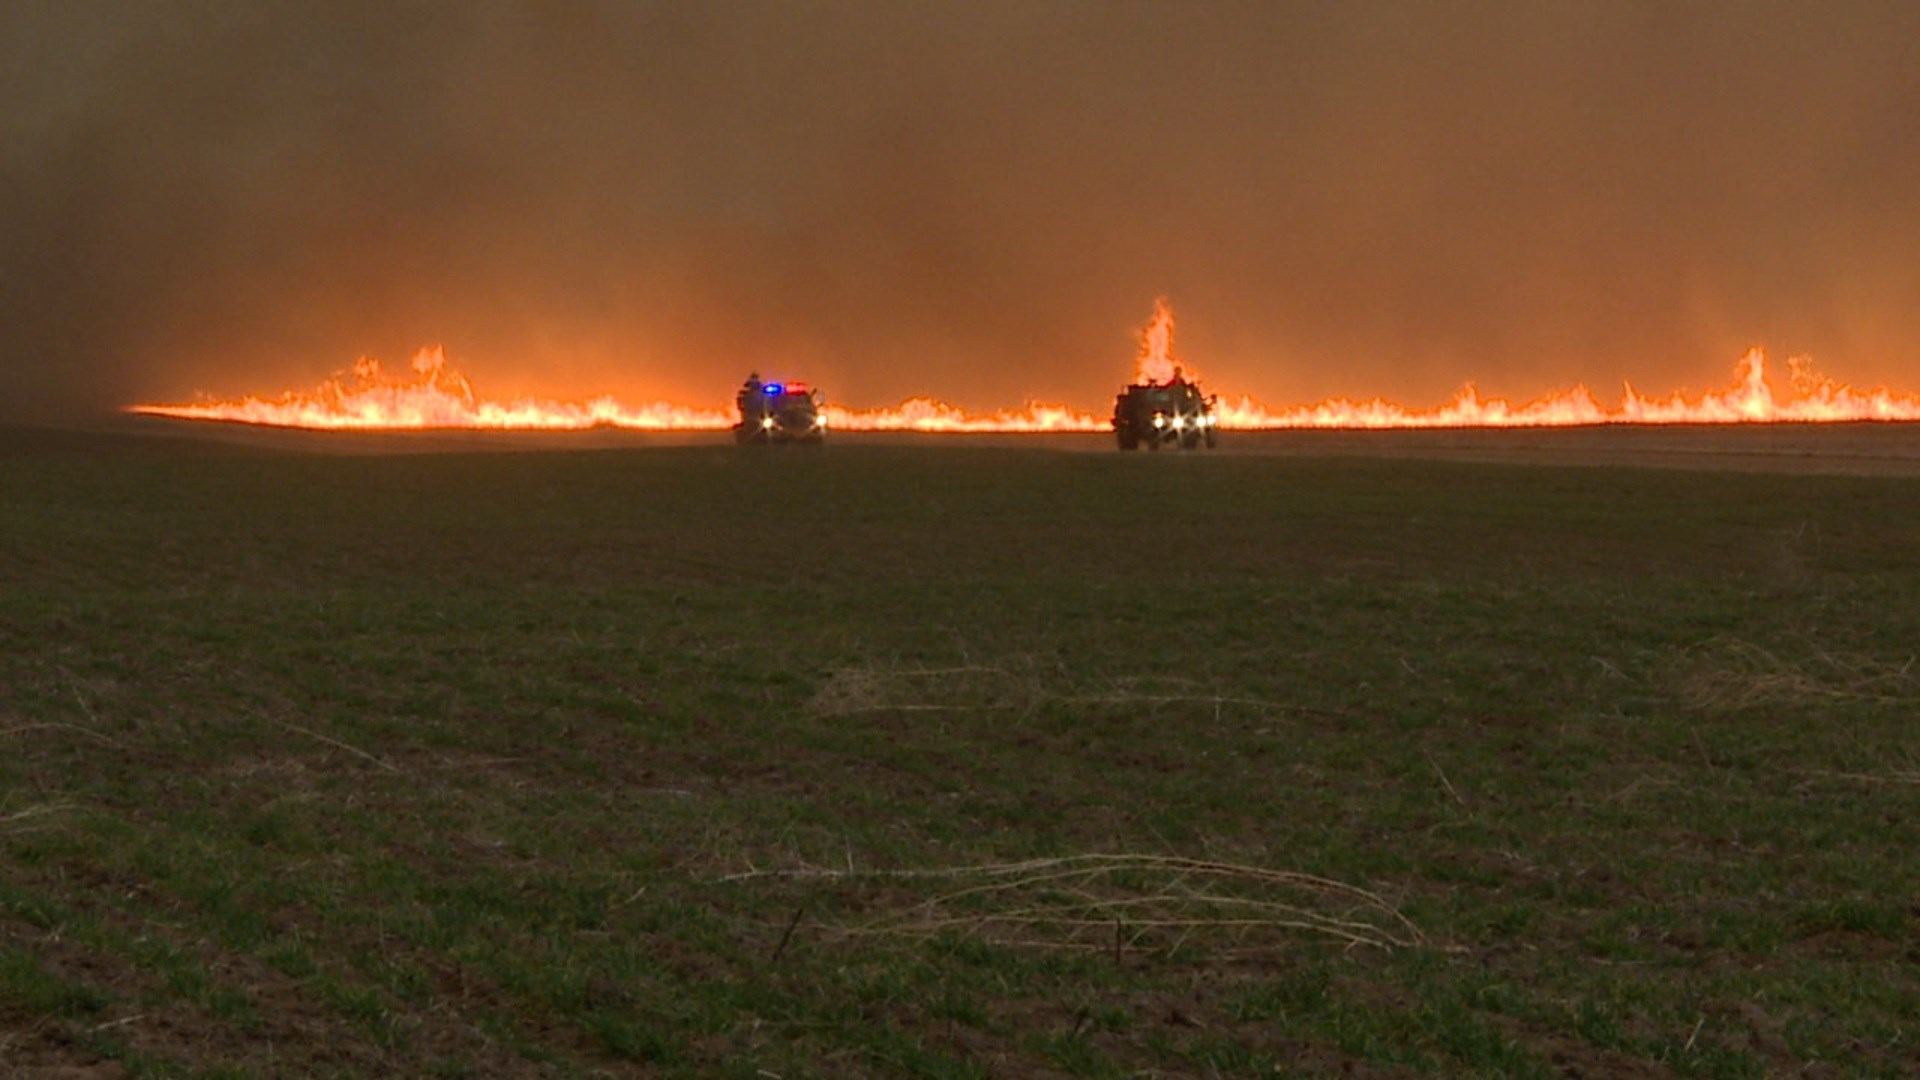 A massive grass fire burning in southwest Kansas. (Photo by KAKE TV in Wichita)